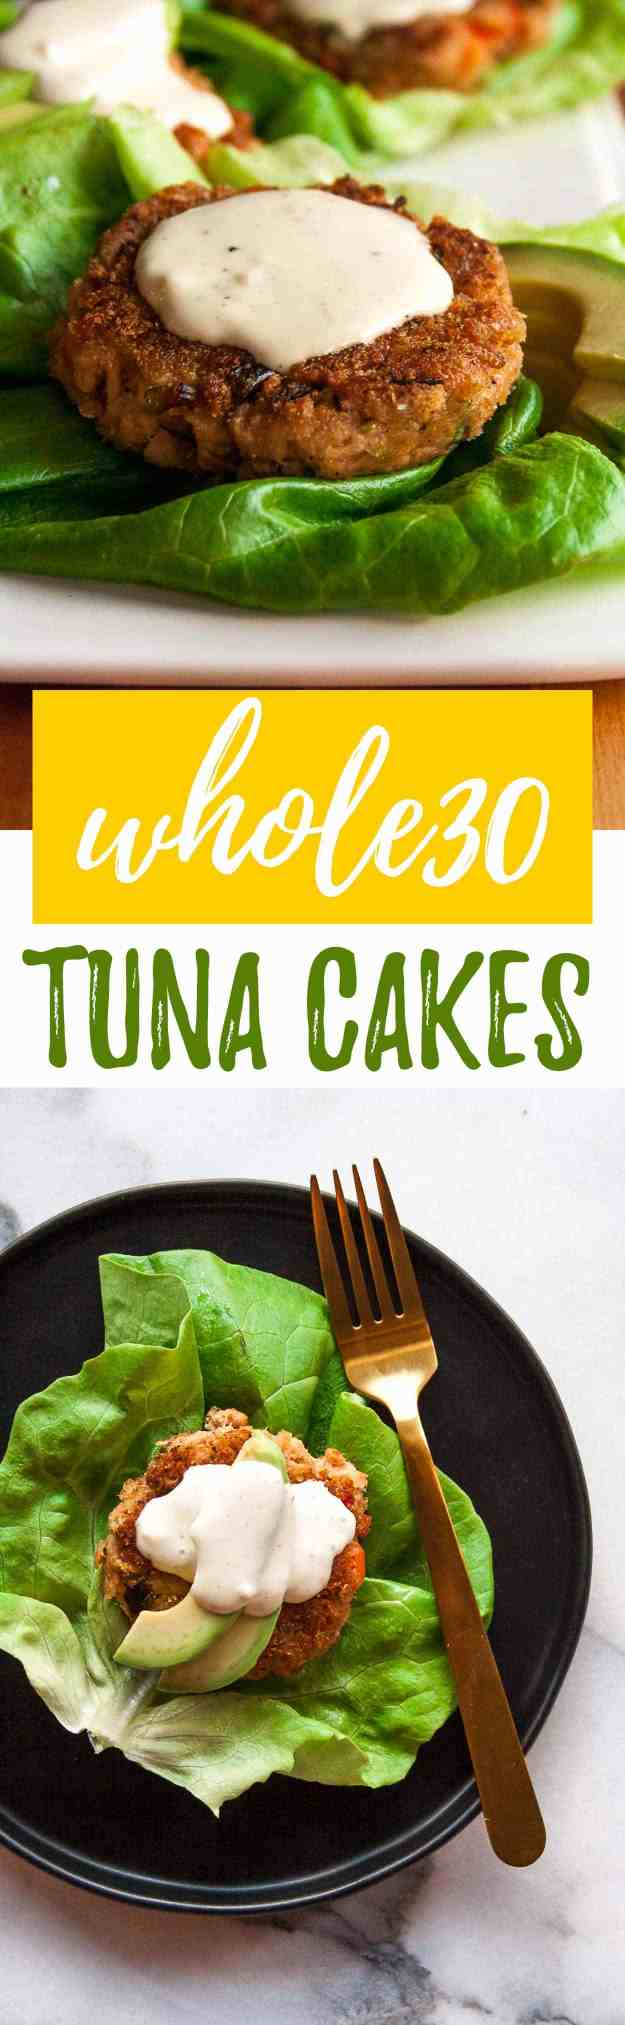 Whole30 Tuna Cakes with Lemon-Garlic Aioli | #whole30 #easy #recipe #healthy #lowcarb #paleo #glutenfree | hungrybynature.com